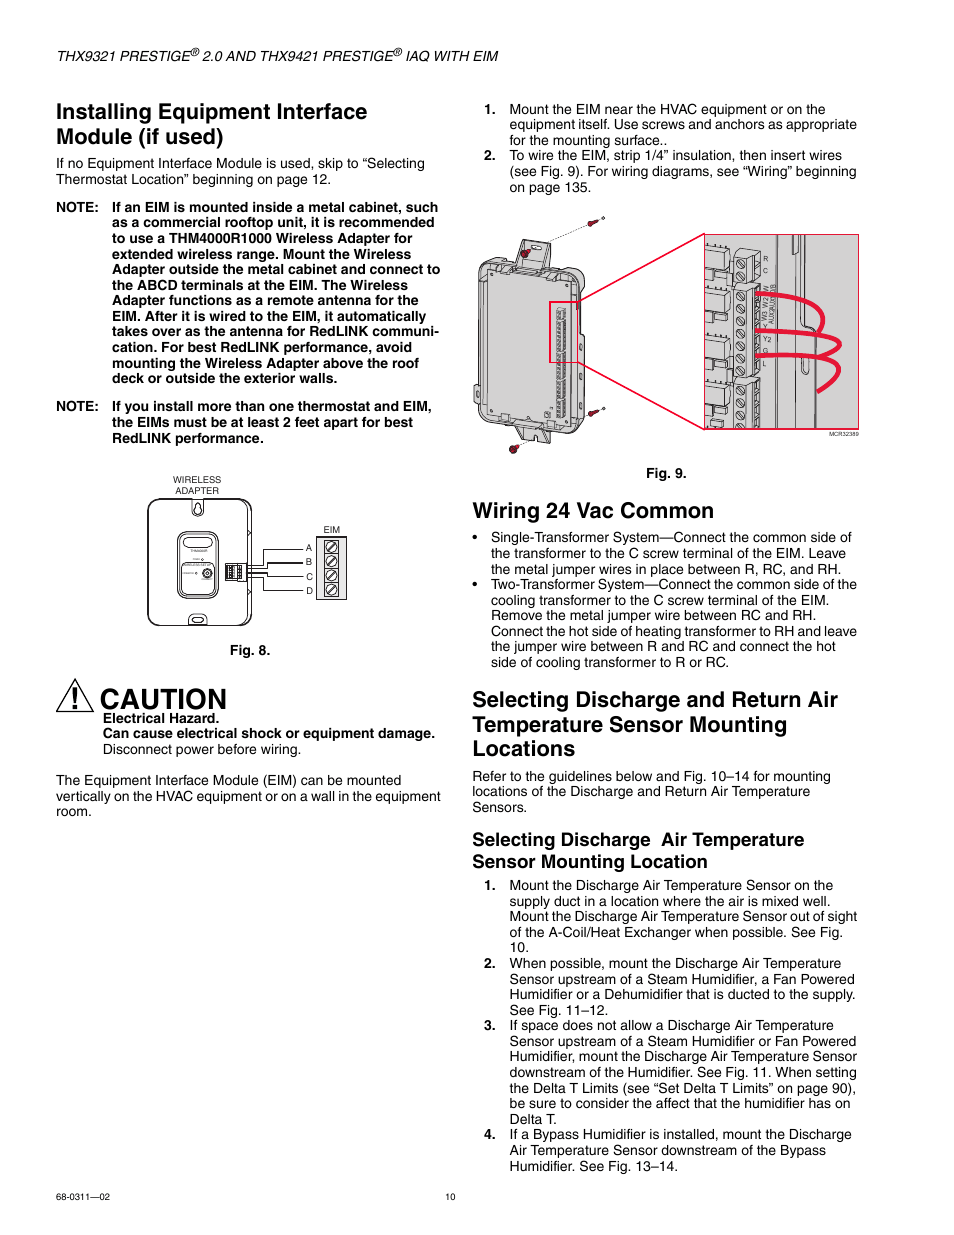 hight resolution of installing equipment interface module if used wiring 24 vac common mounting locations